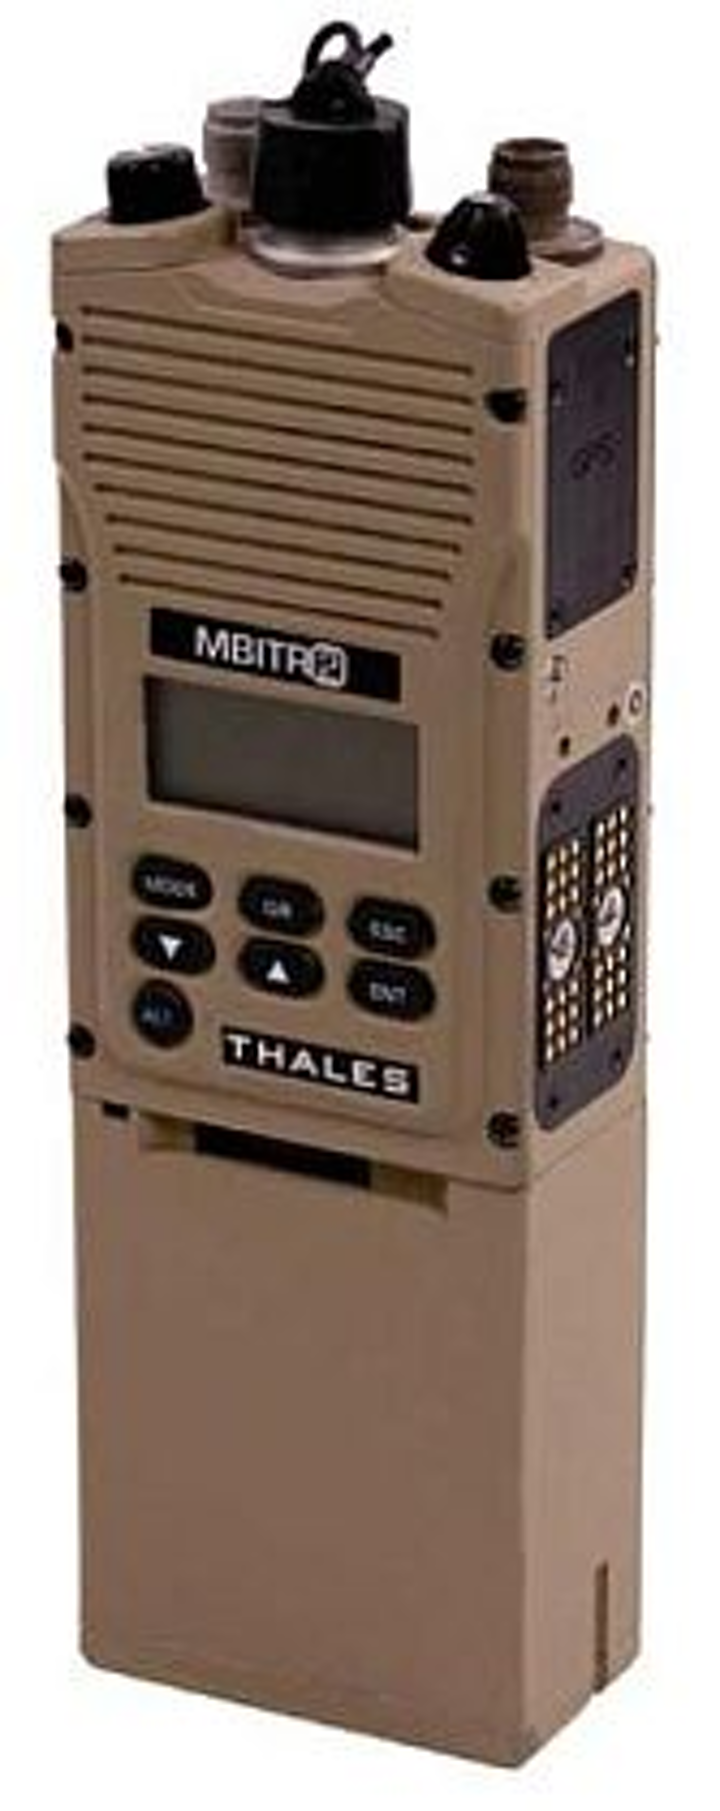 Military radio that transmits simultaneously on wideband and narrowband introduced by Thales